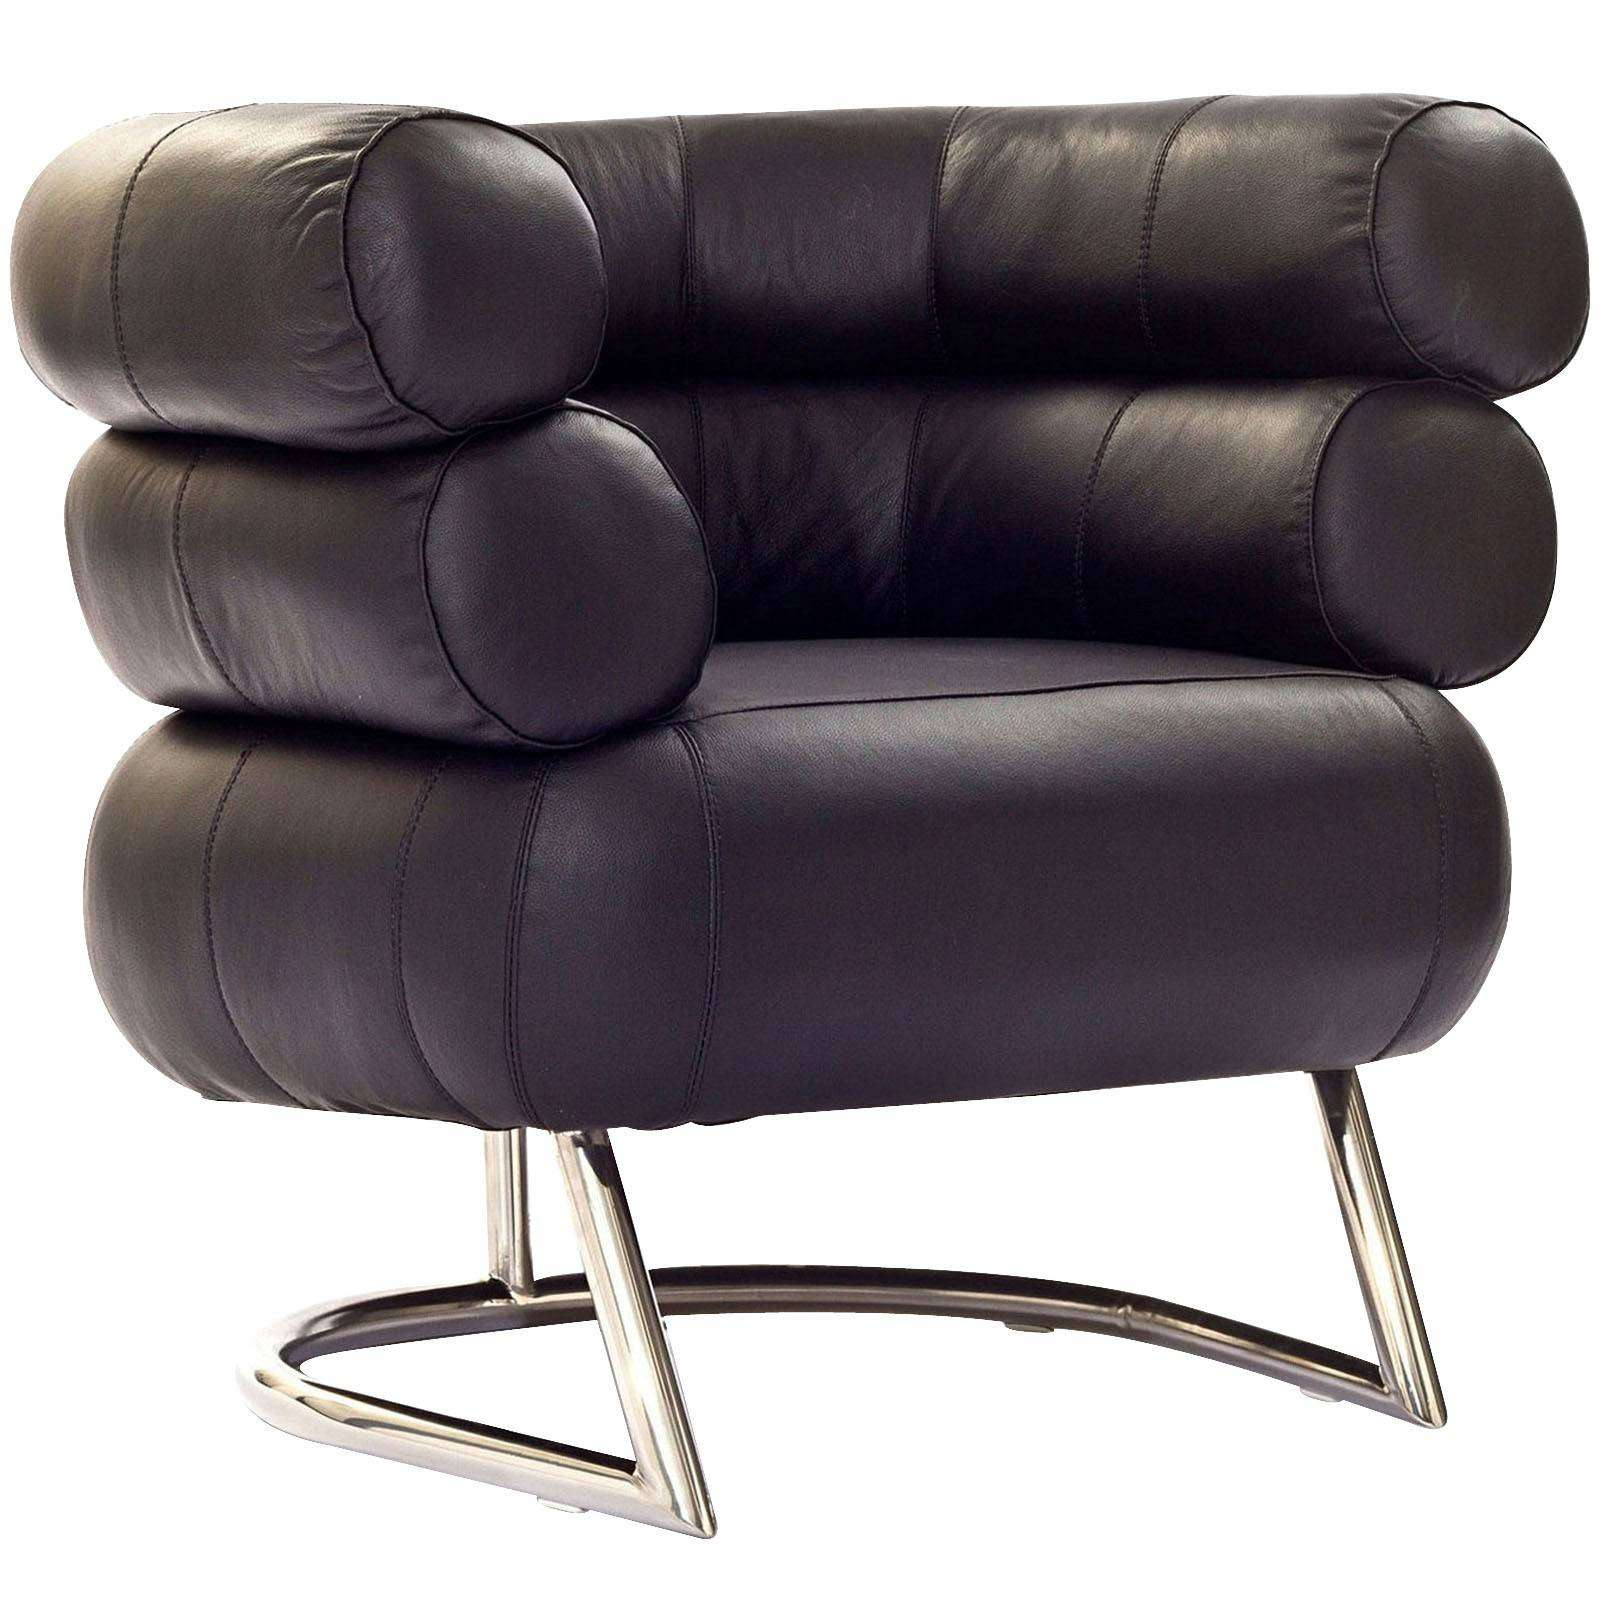 Eileen gray bibendum arm chair for Furniture chairs